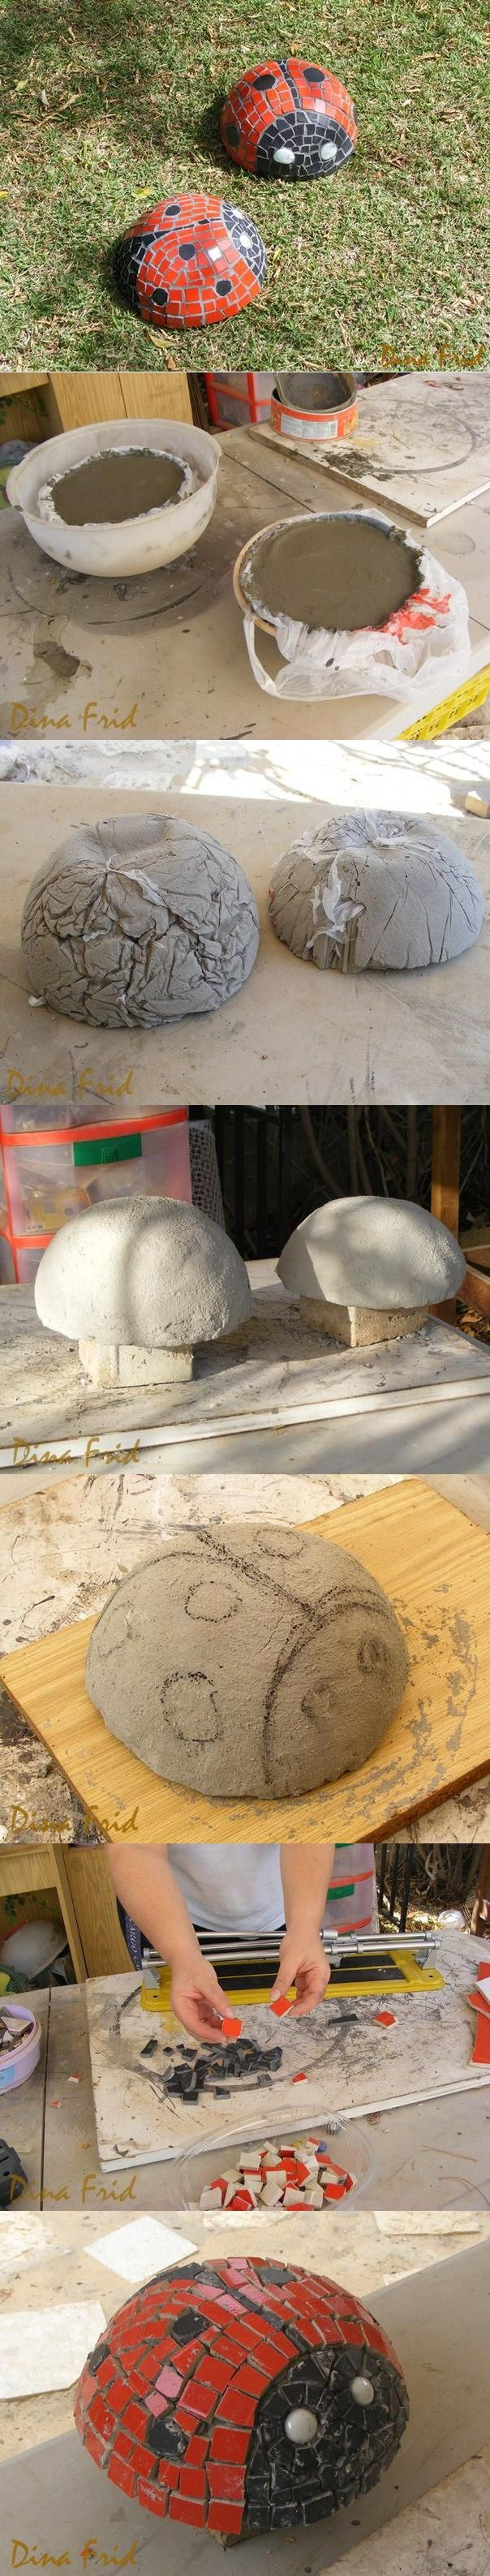 DIY Concrete Ladybug-This would be a great stepping stone. Personalize it according to your taste! #concrete #diy #diycraft #diyideas #diyprojects #handmade #ladybug #howto #tutorials #garden #landscape